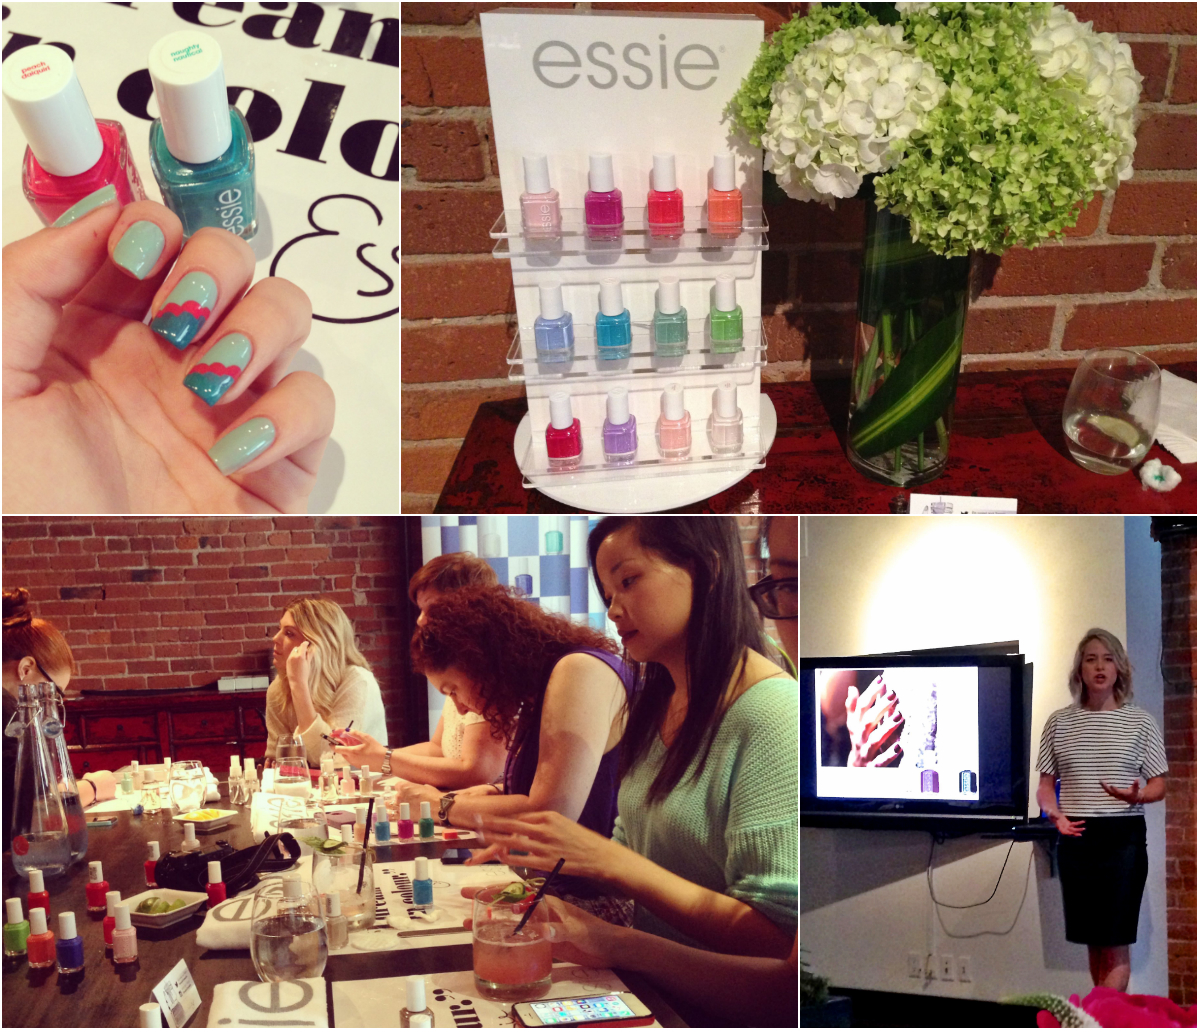 Scalloped Nail Art Tutorial featuring Essie 2014 Neon Collection